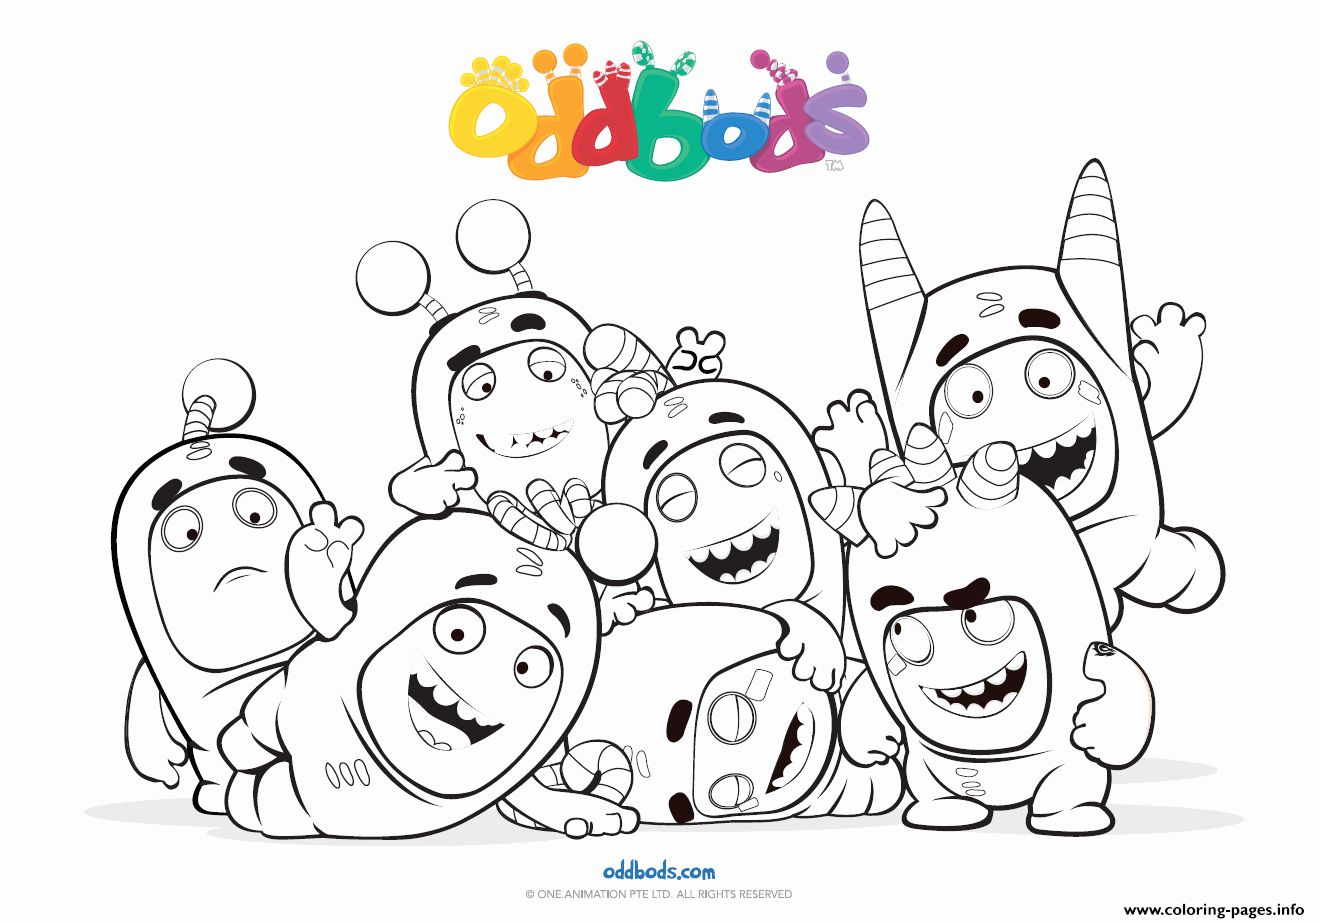 Coloring Books For Kids Best Of Oddbods Fun Time Kids Coloring Pages Printable Desenhos Para Colorir Desenhos Pra Colorir Colorir